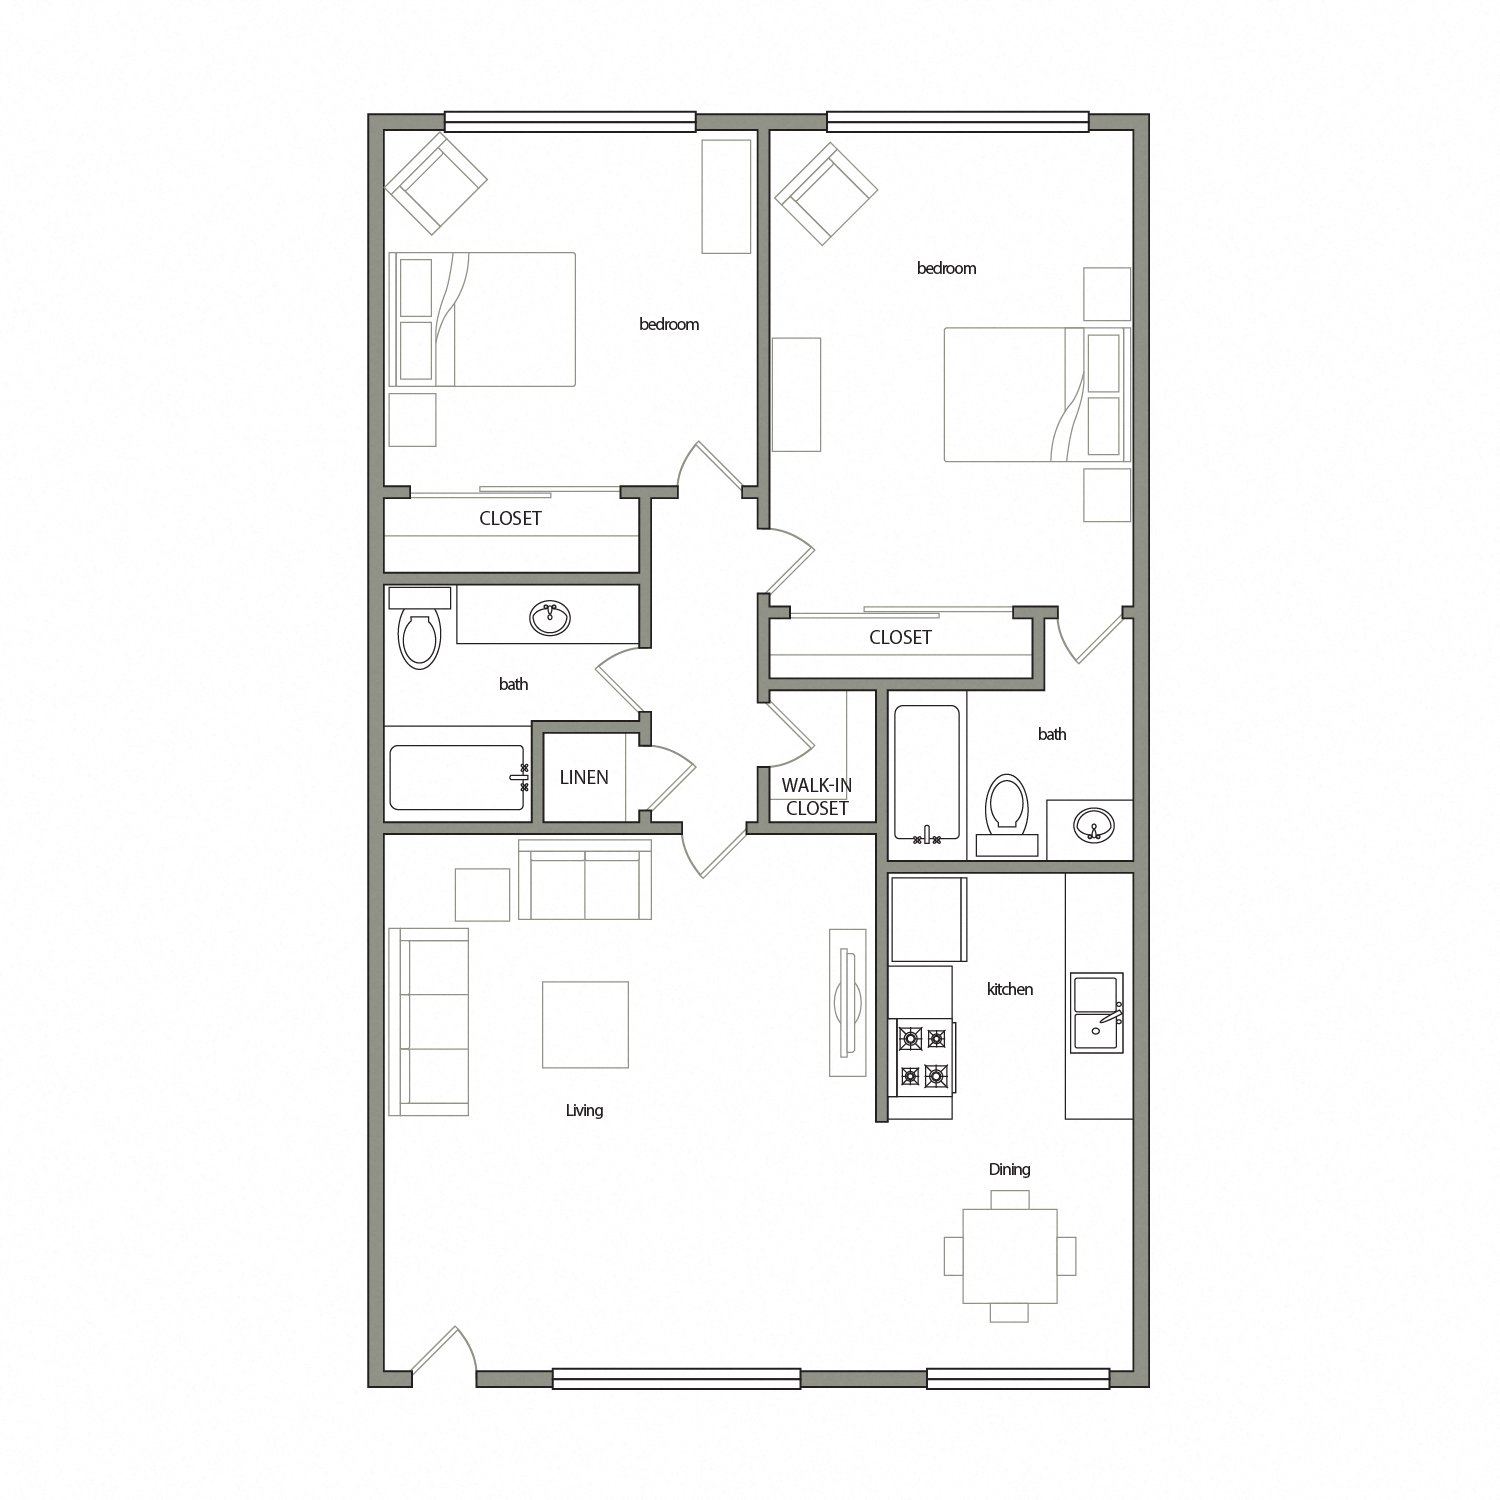 Malaga floor plan diagram. Two bedrooms, two bathrooms, and an open kitchen dining and living area.